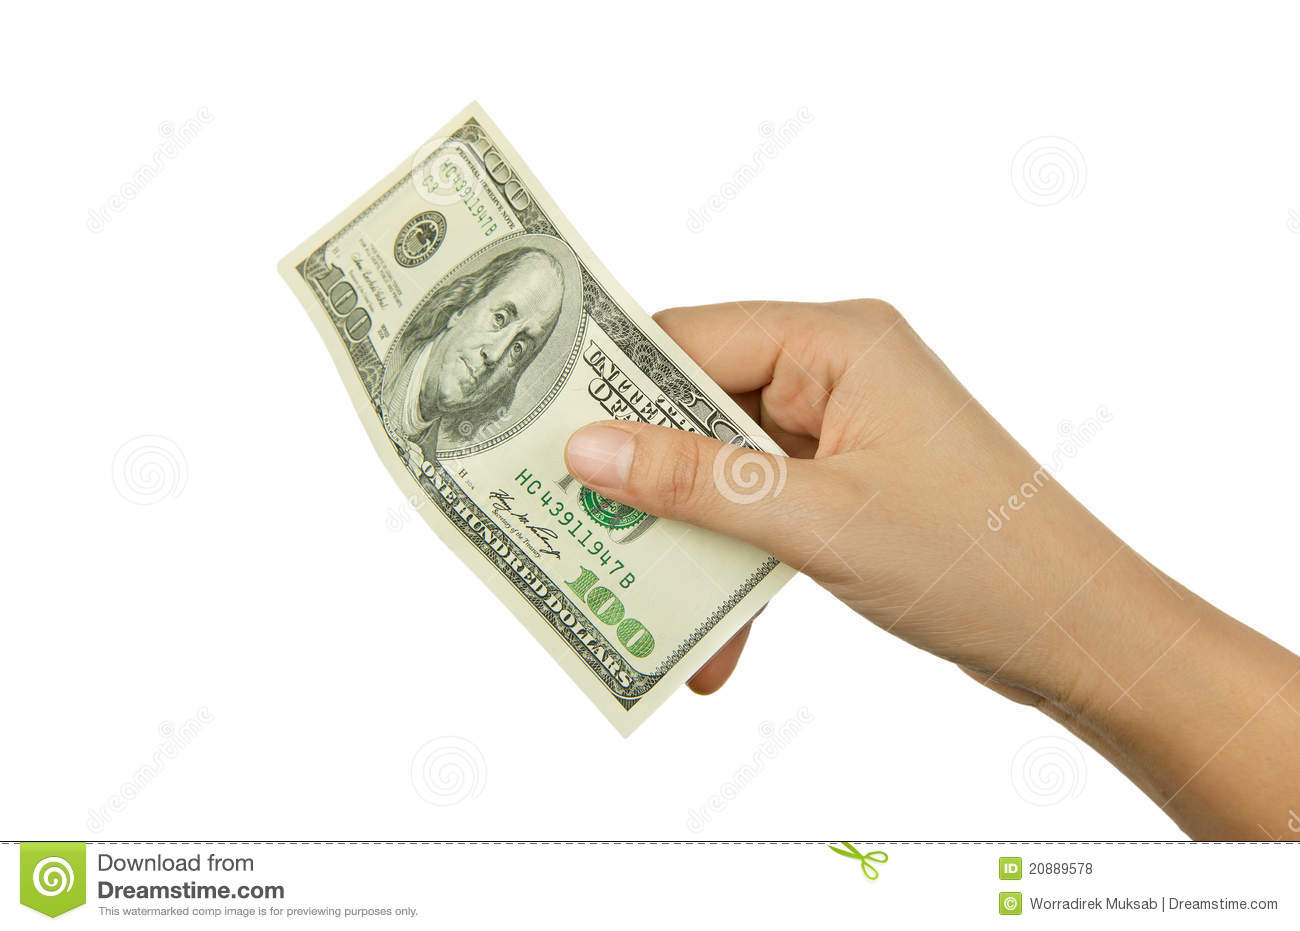 Hand Holding Money Royalty Free Stock Photos - Image: 20889578Holding Money In Hand